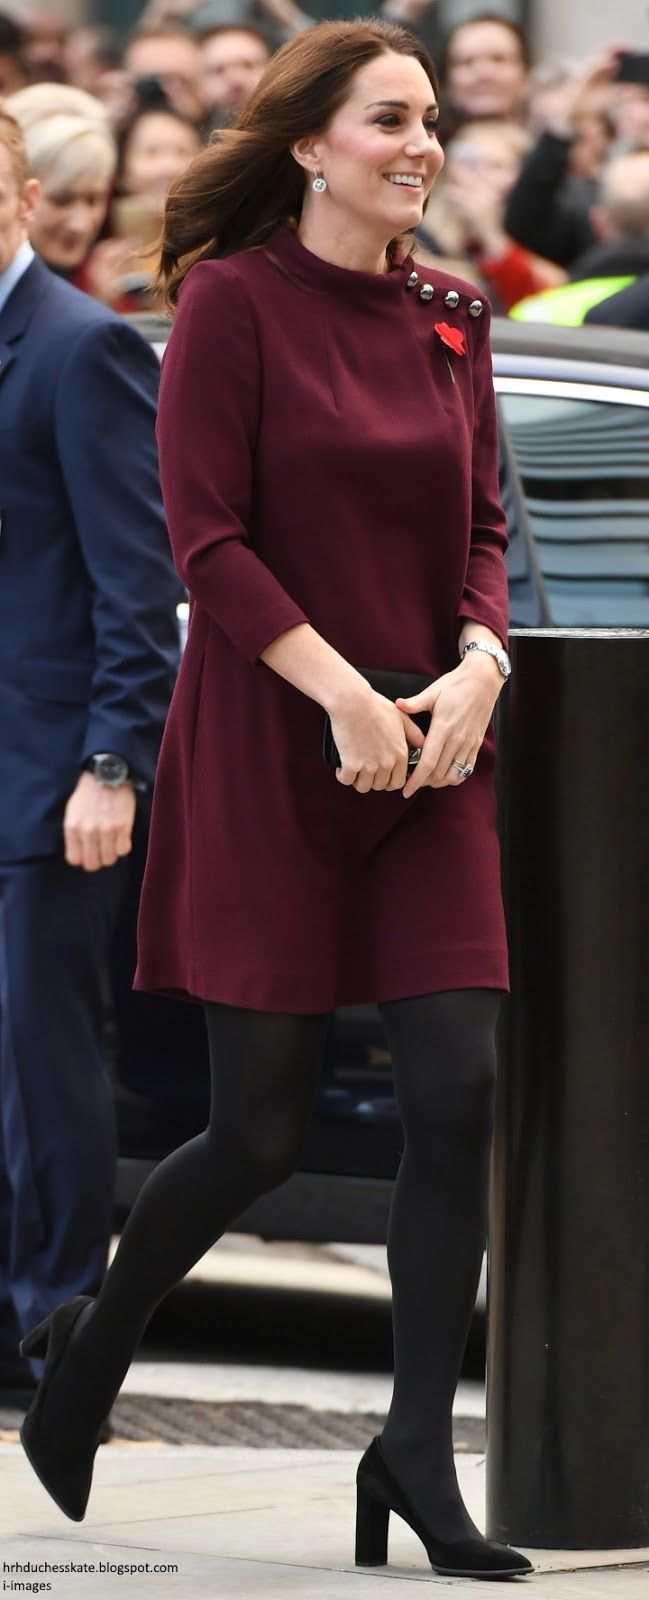 Kate looked chic in the £480 GOAT Eloise Tunic Dress. Duchess Kate: Kate Reveals She's Still Adjusting to Leaving George at the School Gates During Place2Be School Leaders Forum!